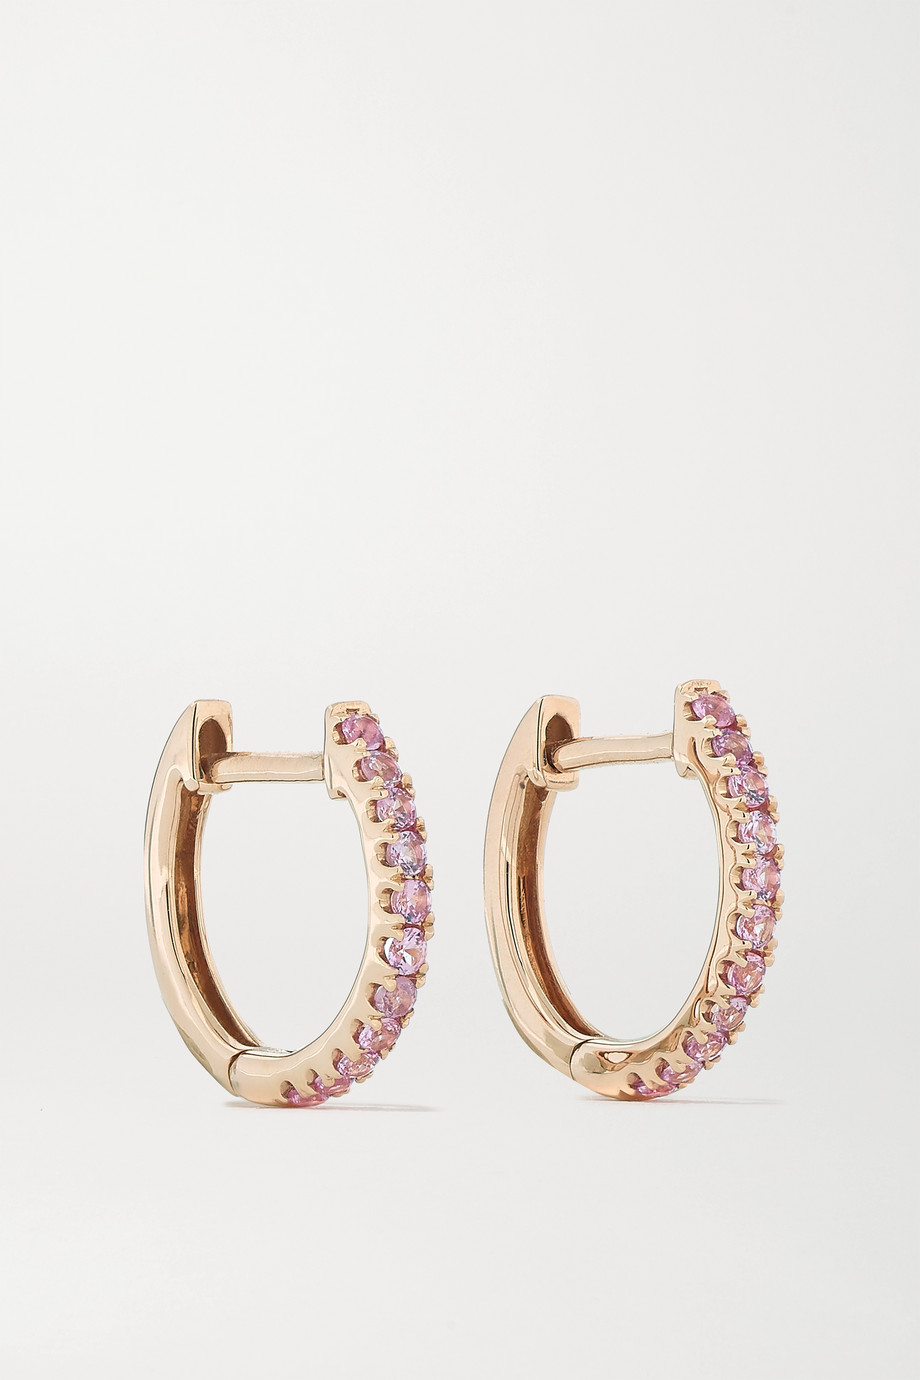 Anita Ko Huggies 18-karat rose gold sapphire earrings